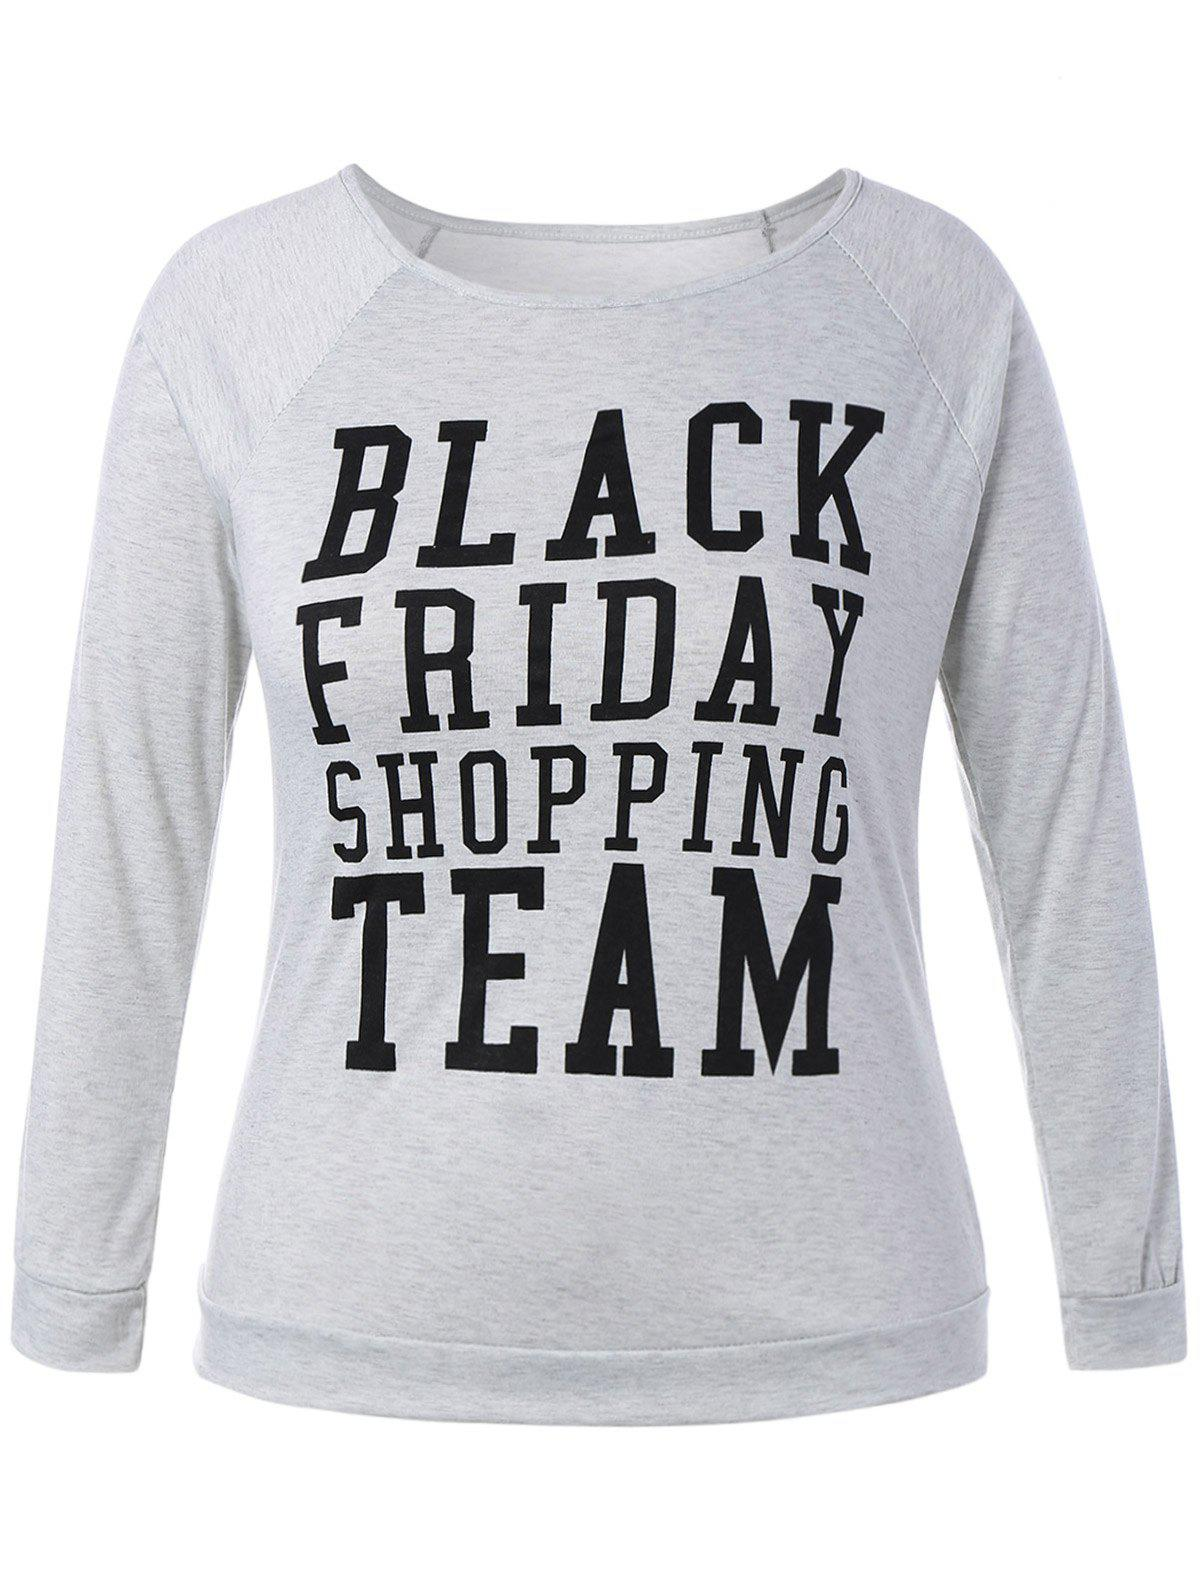 Plus Size Black Friday Long Sleeve Christmas T-ShirtWOMEN<br><br>Size: L; Color: LIGHT GRAY; Material: Cotton Blends,Polyester; Shirt Length: Regular; Sleeve Length: Full; Collar: Scoop Neck; Style: Fashion; Season: Fall,Spring,Winter; Pattern Type: Letter; Weight: 0.203kg; Package Contents: 1 x T-Shirt;